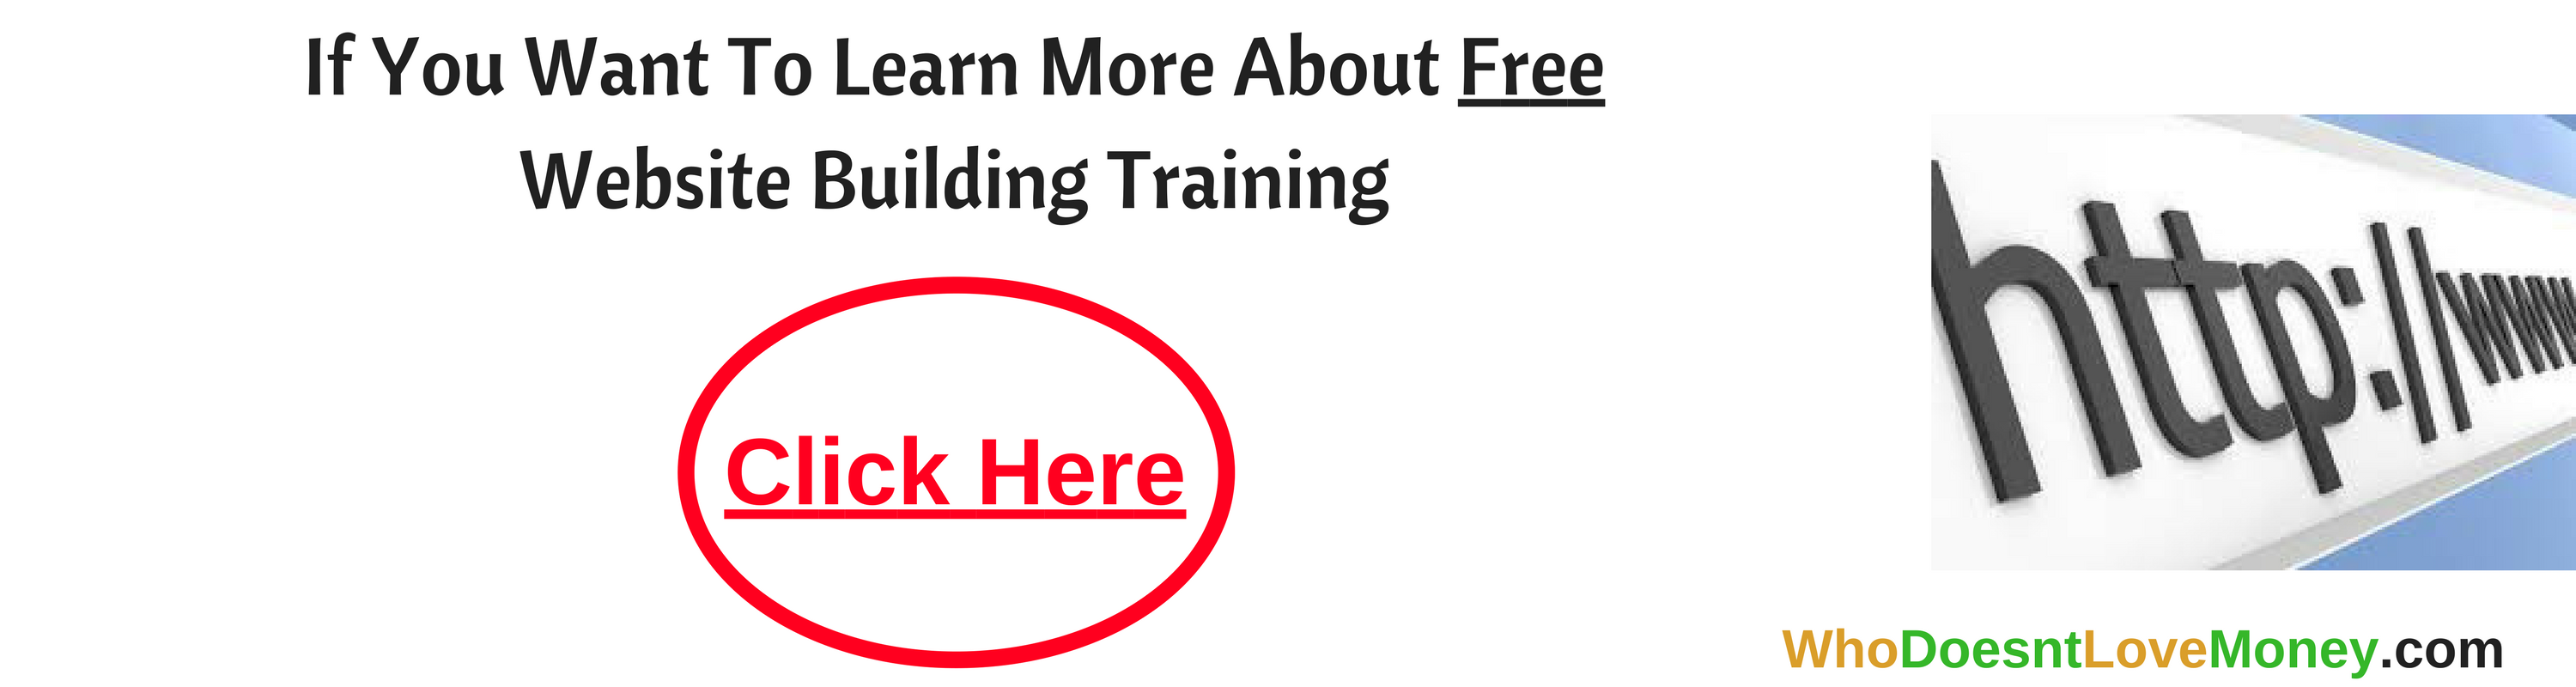 If You Want To Learn More About Free Website Building Training